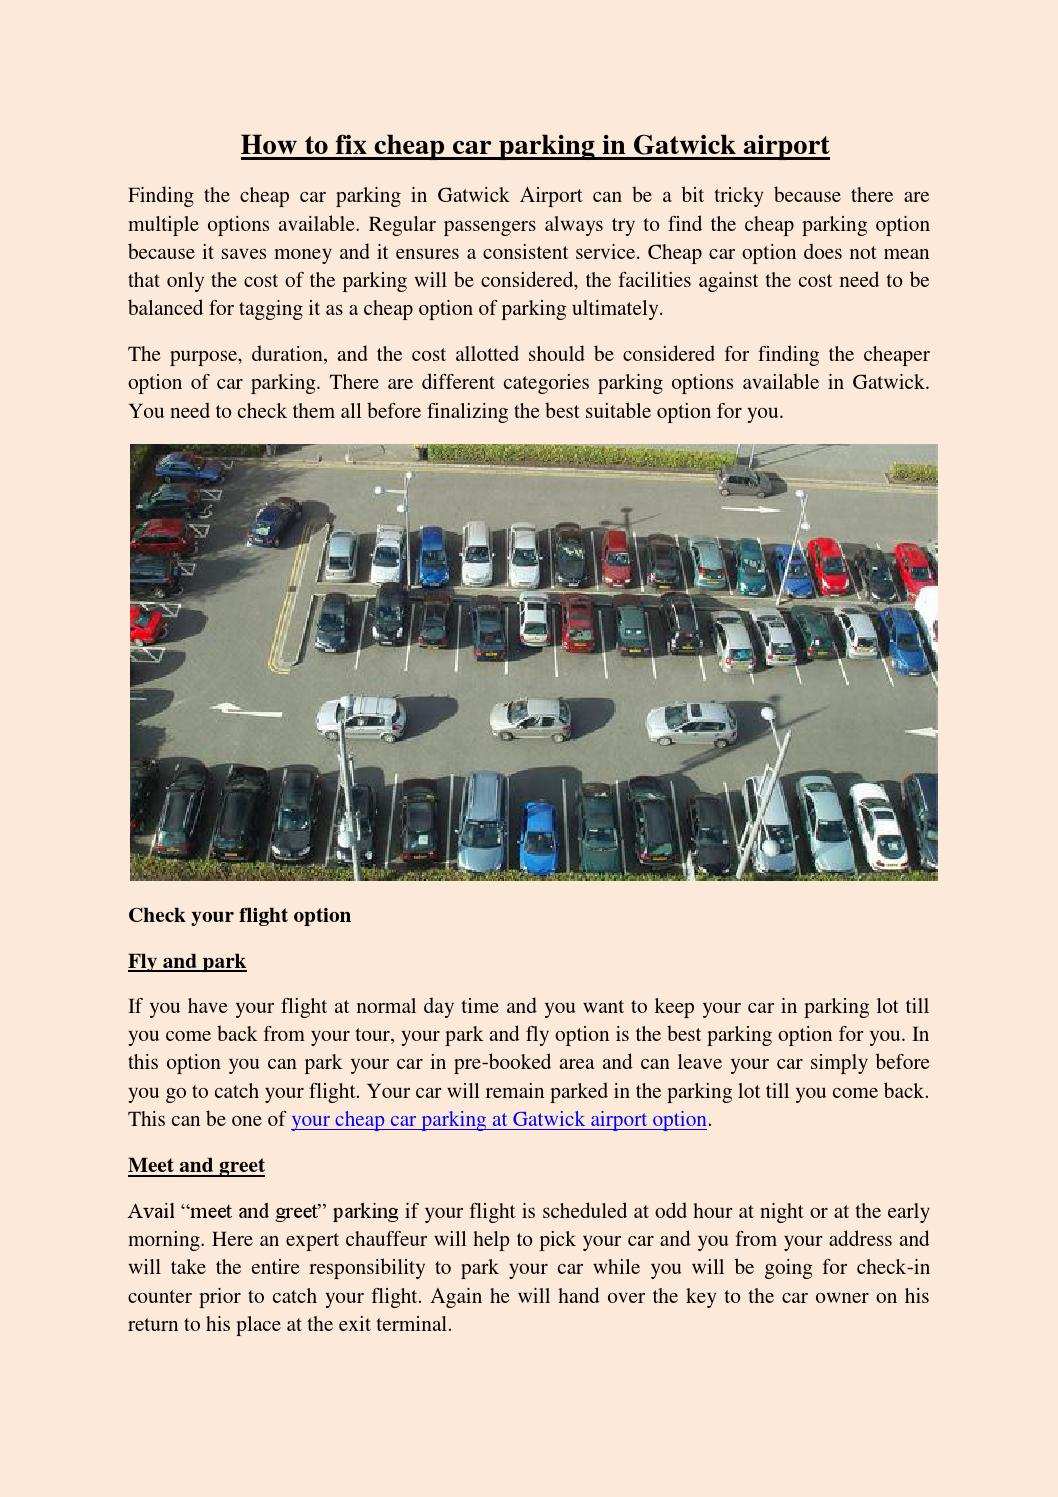 How To Fix Cheap Car Parking In Gatwick Airport By Arunparking Issuu